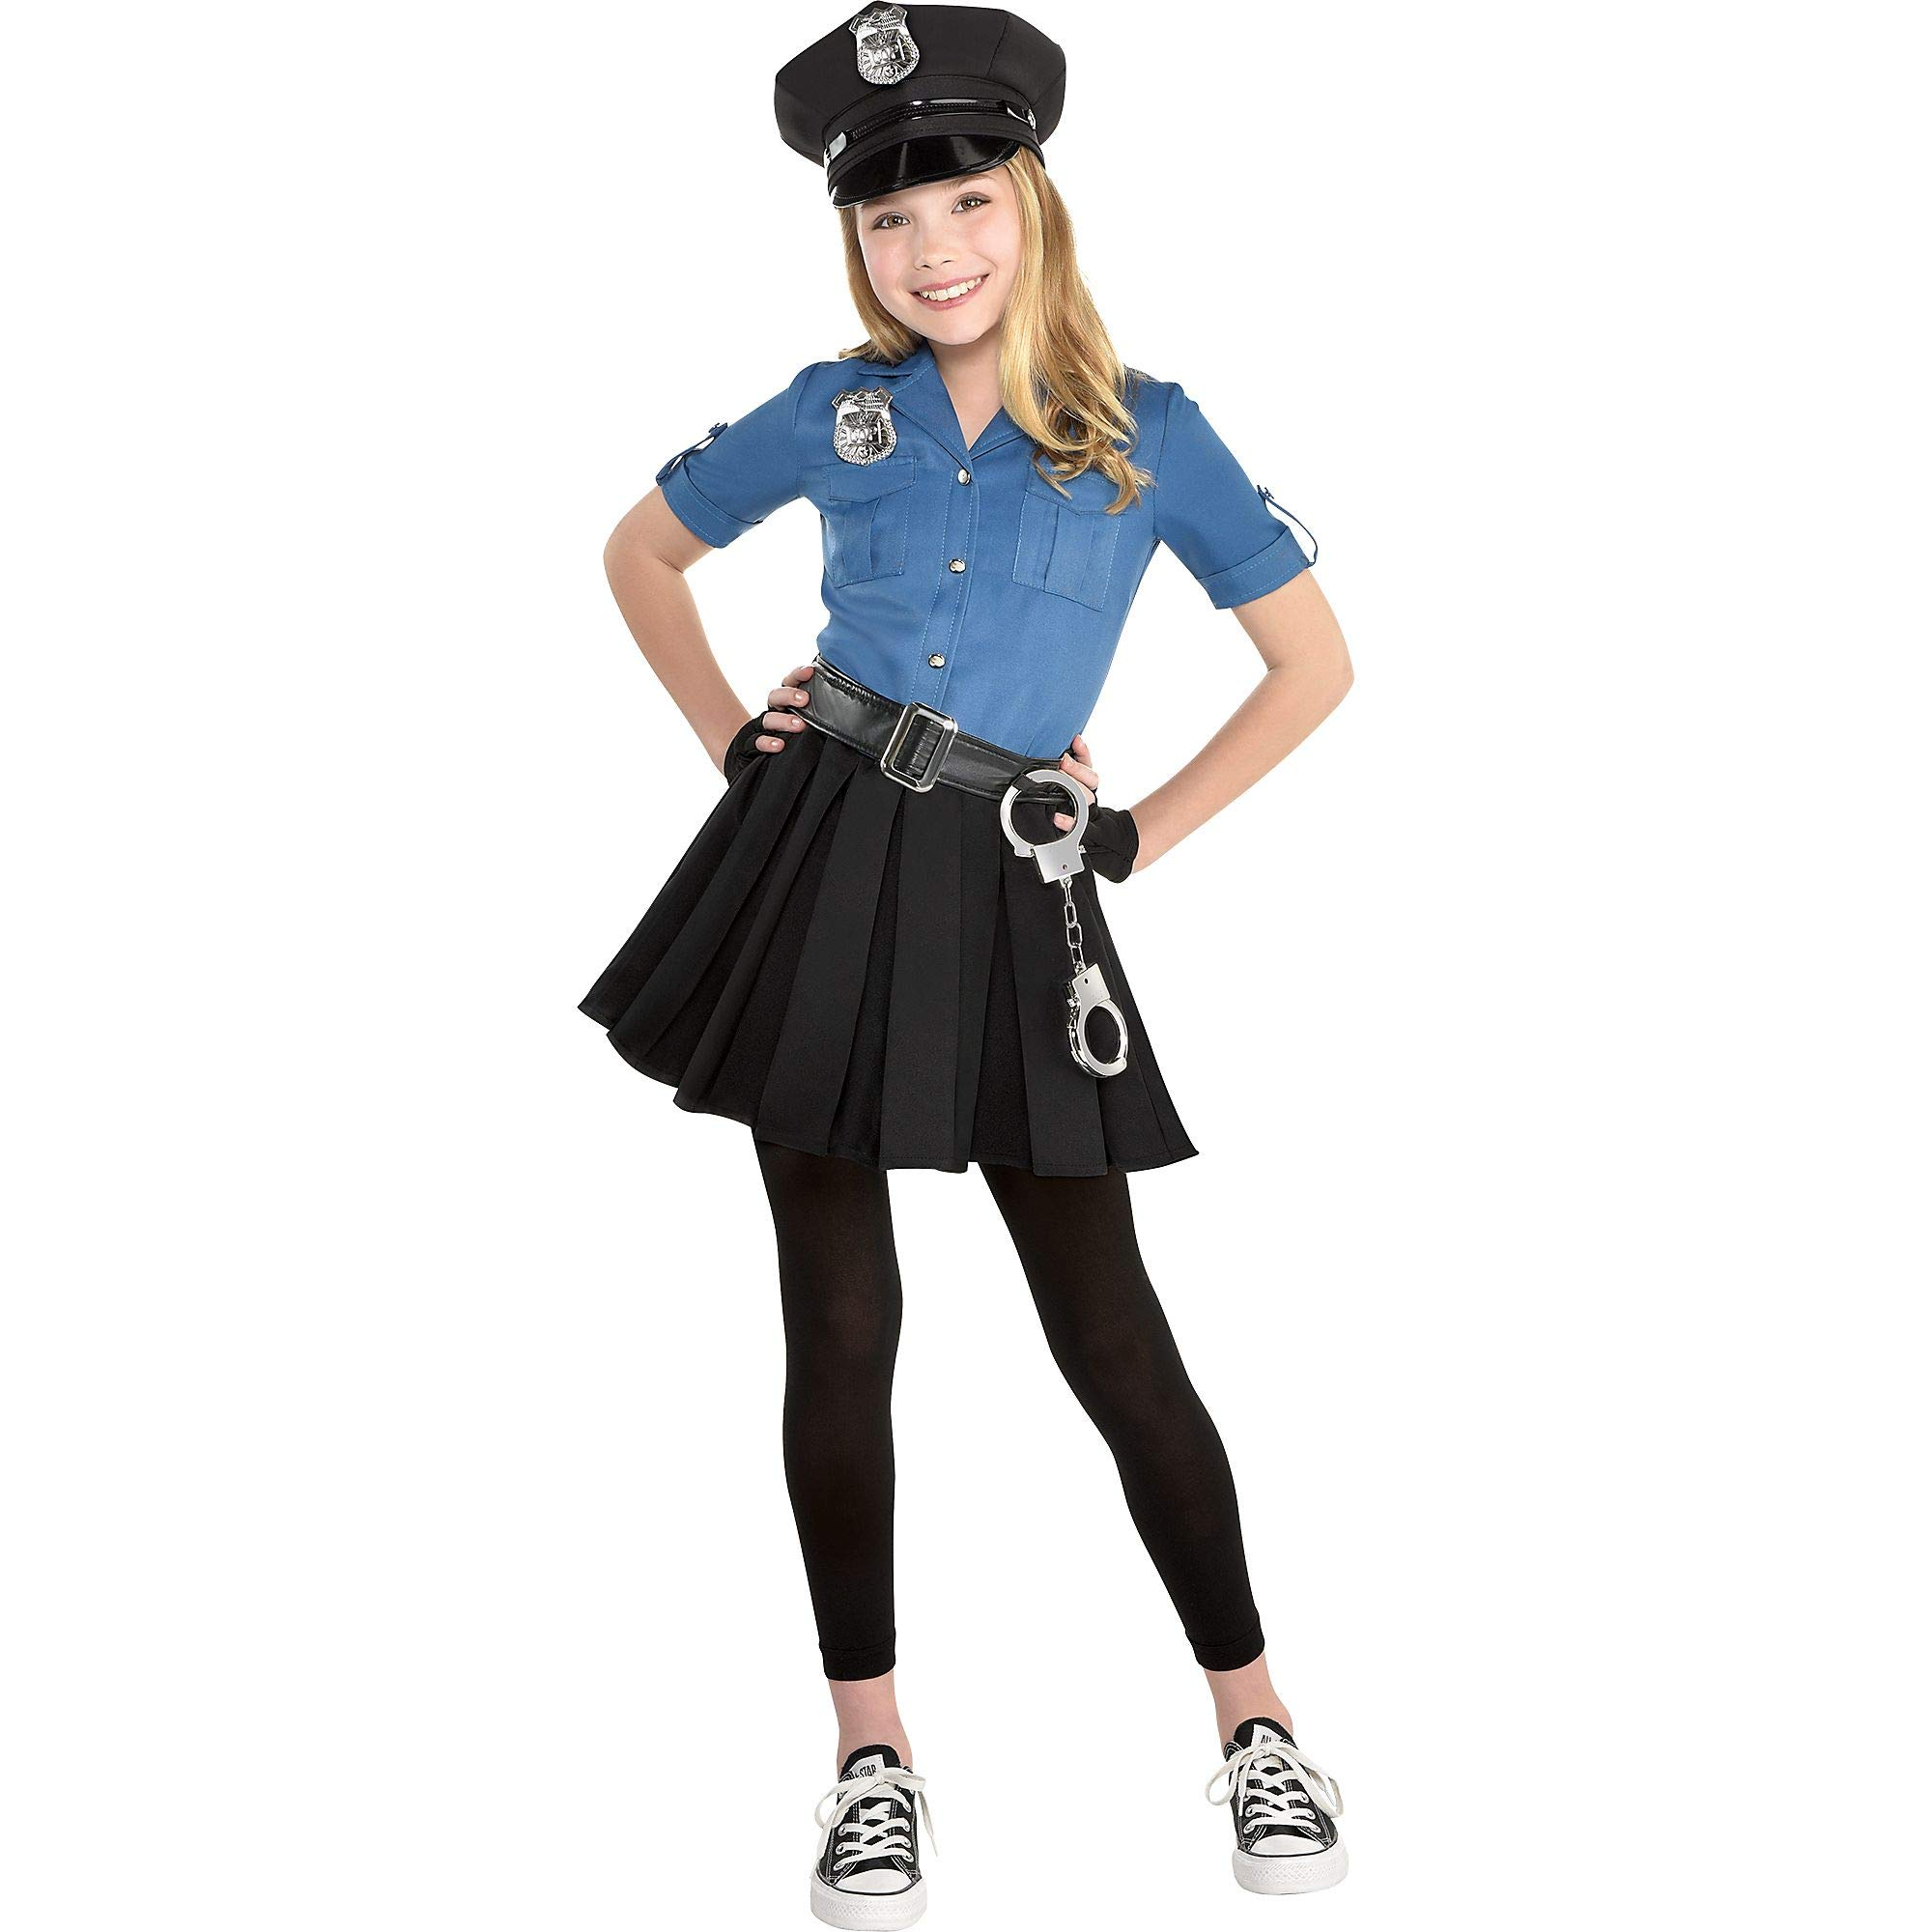 Police Dress Halloween Costume for Girls, Medium, with Included Accessories, by Amscan